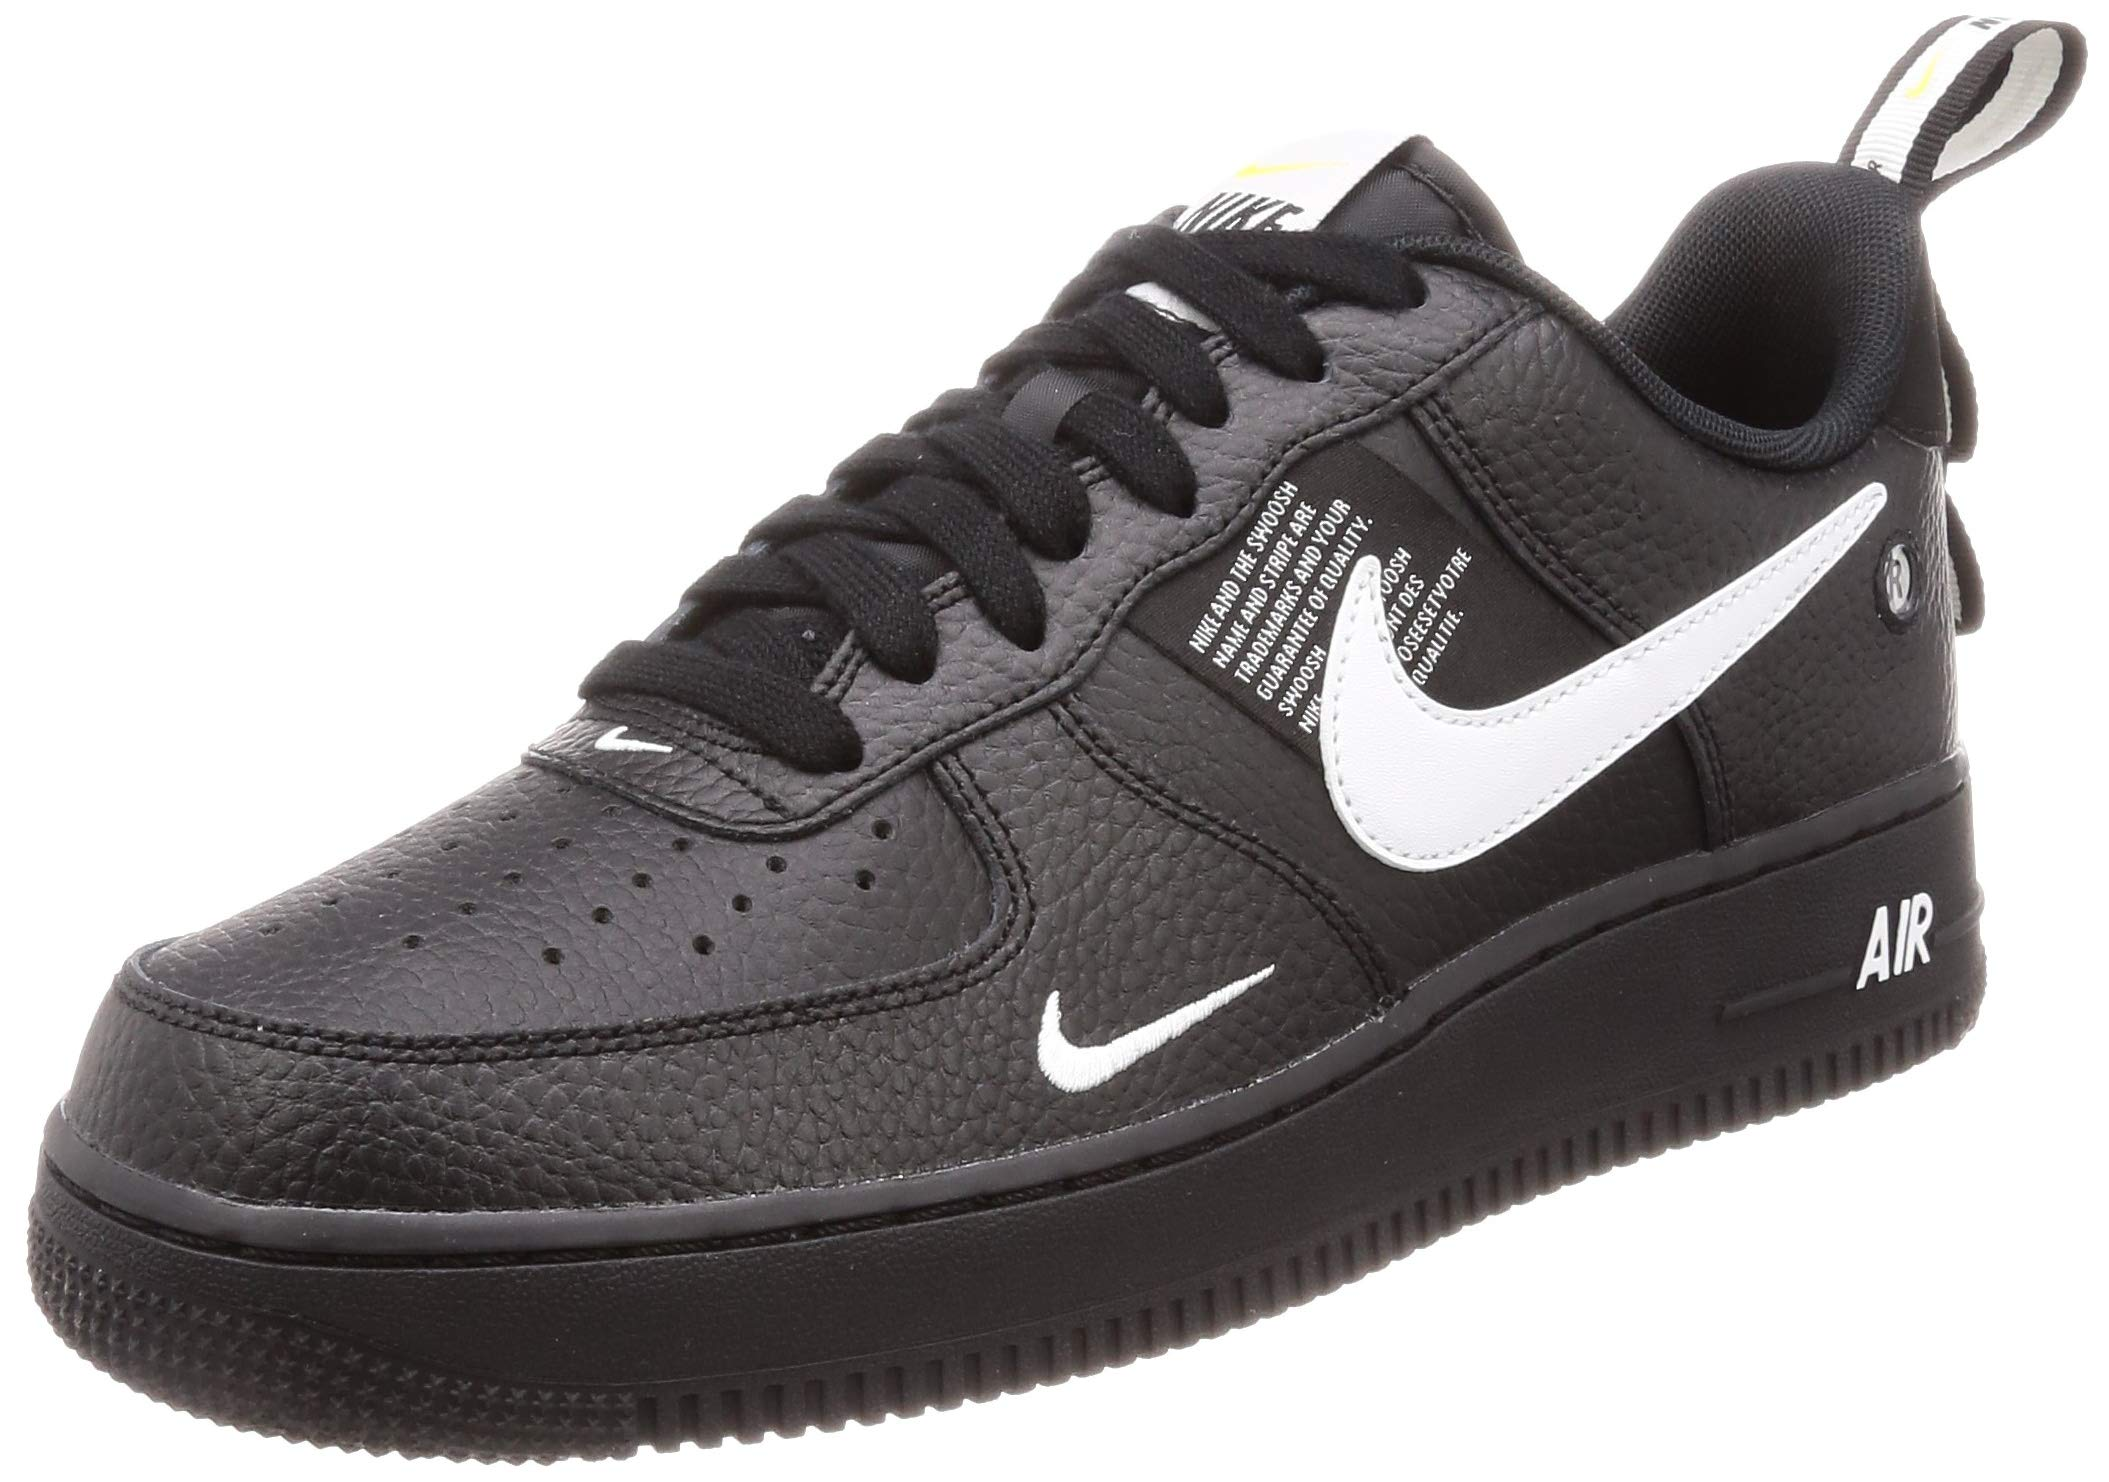 Special Offer Cure Nike Air Force 1 07 LV8 Trainer | Sail